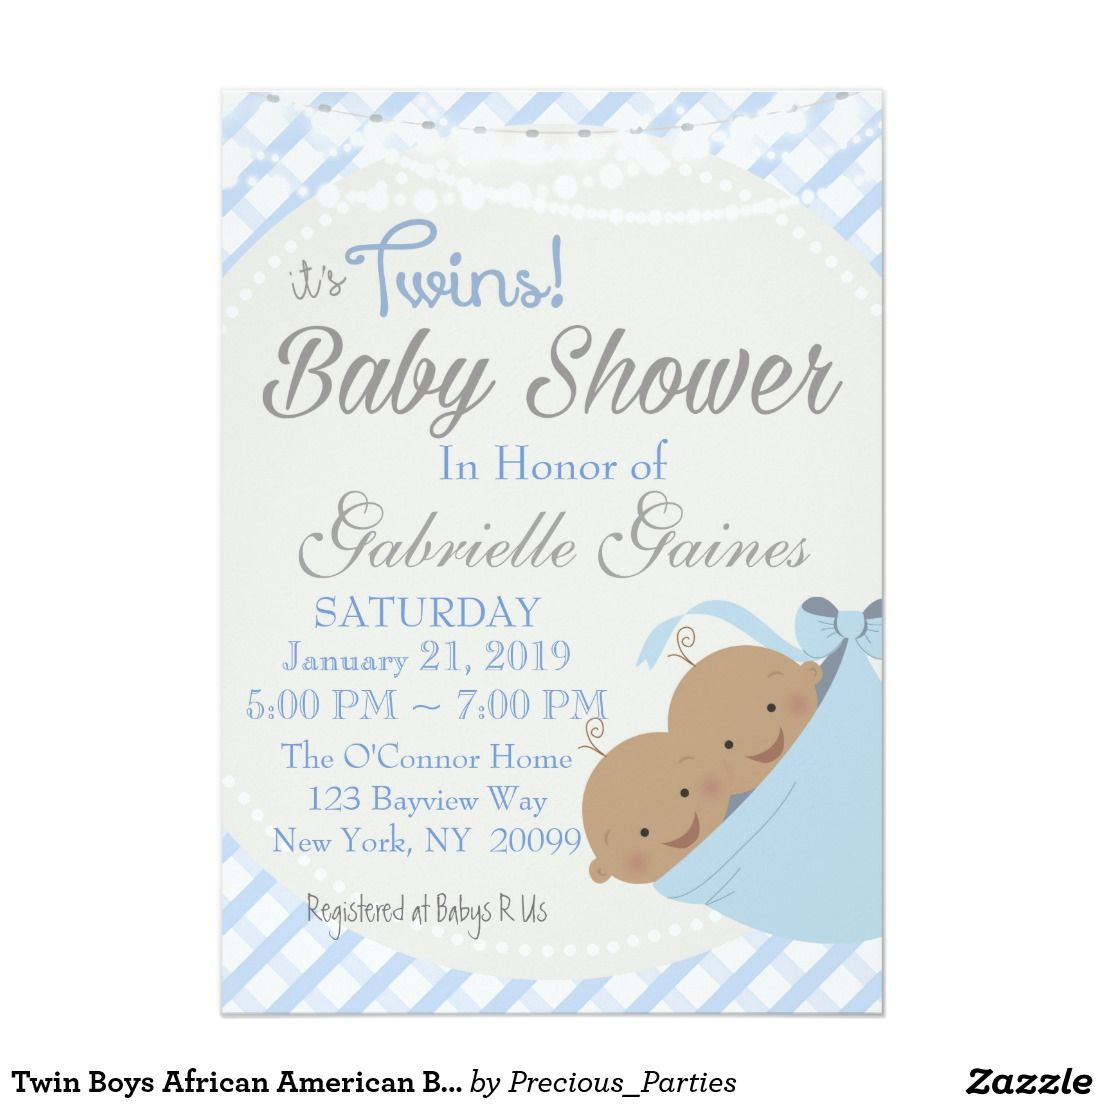 Twin Boys African American Baby Shower Invitation | Baby Showers ...